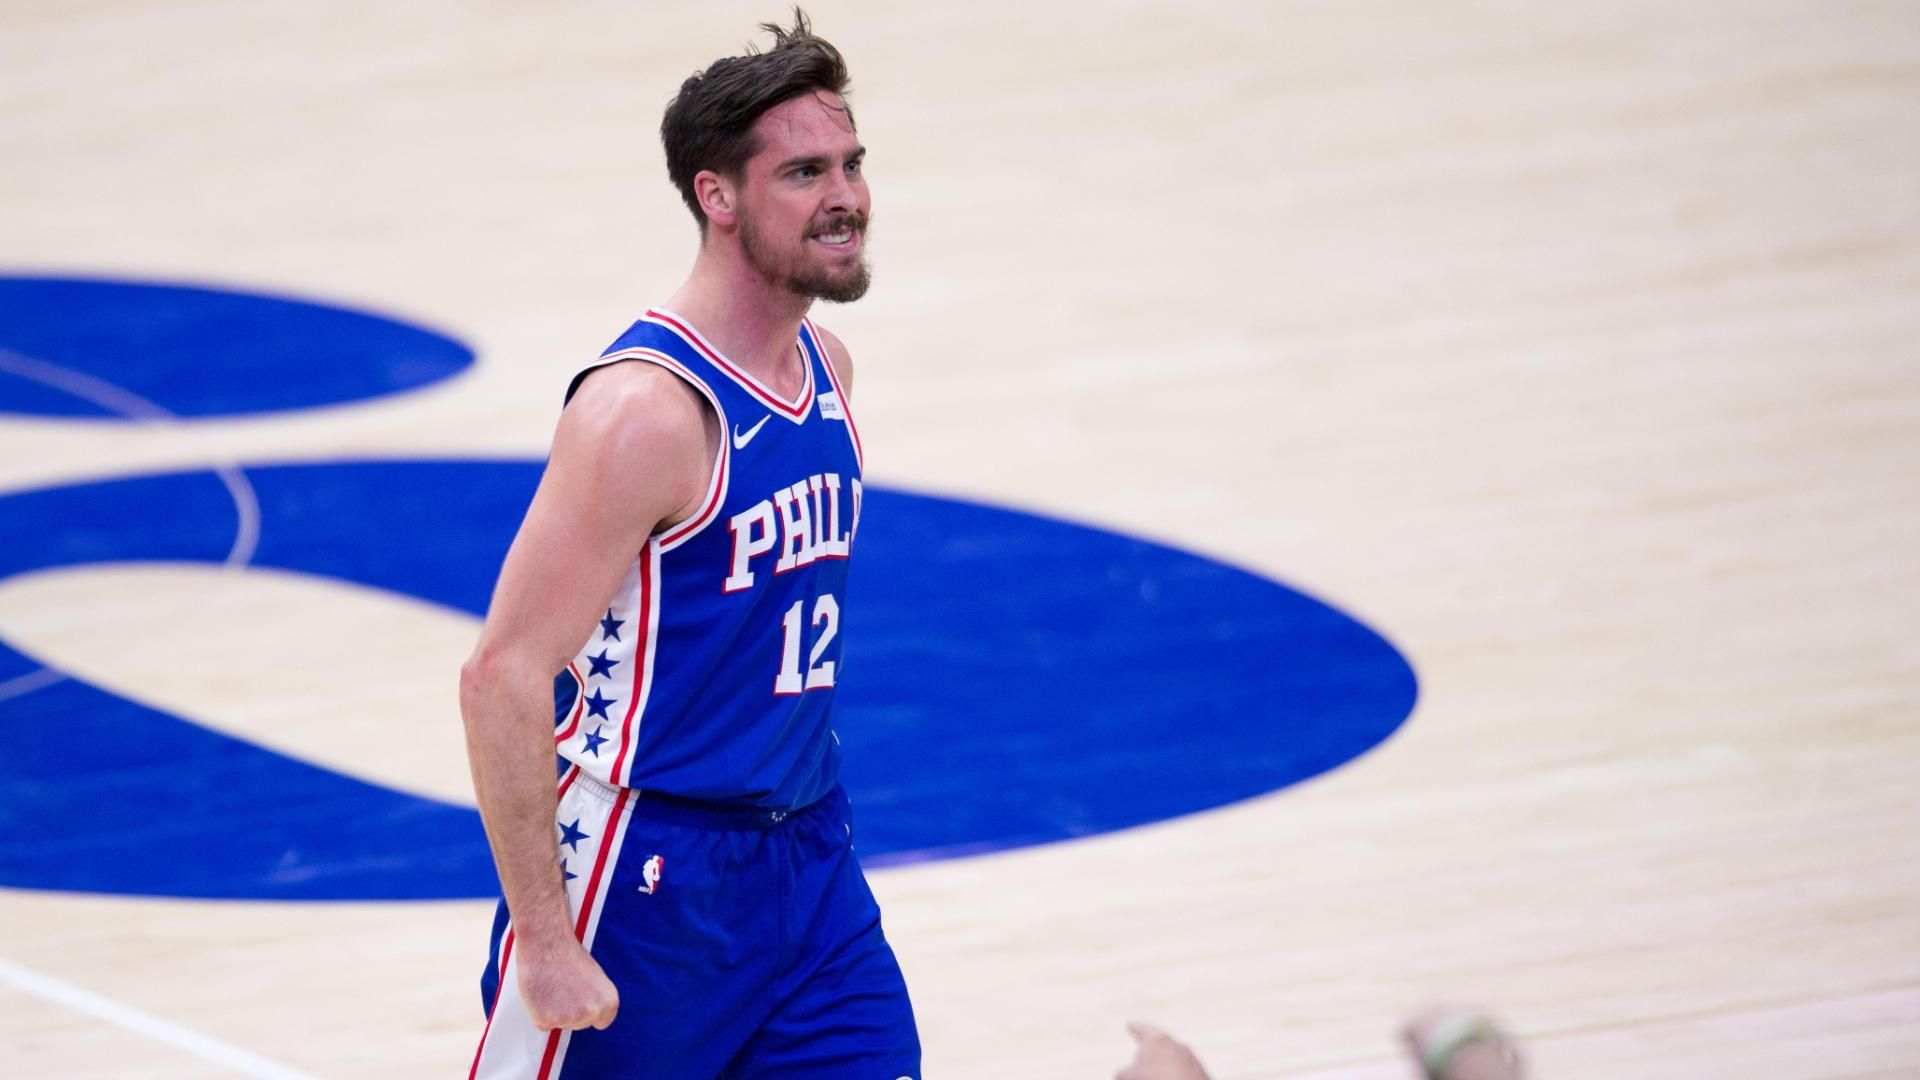 McConnell's triple-double paces Philly to win